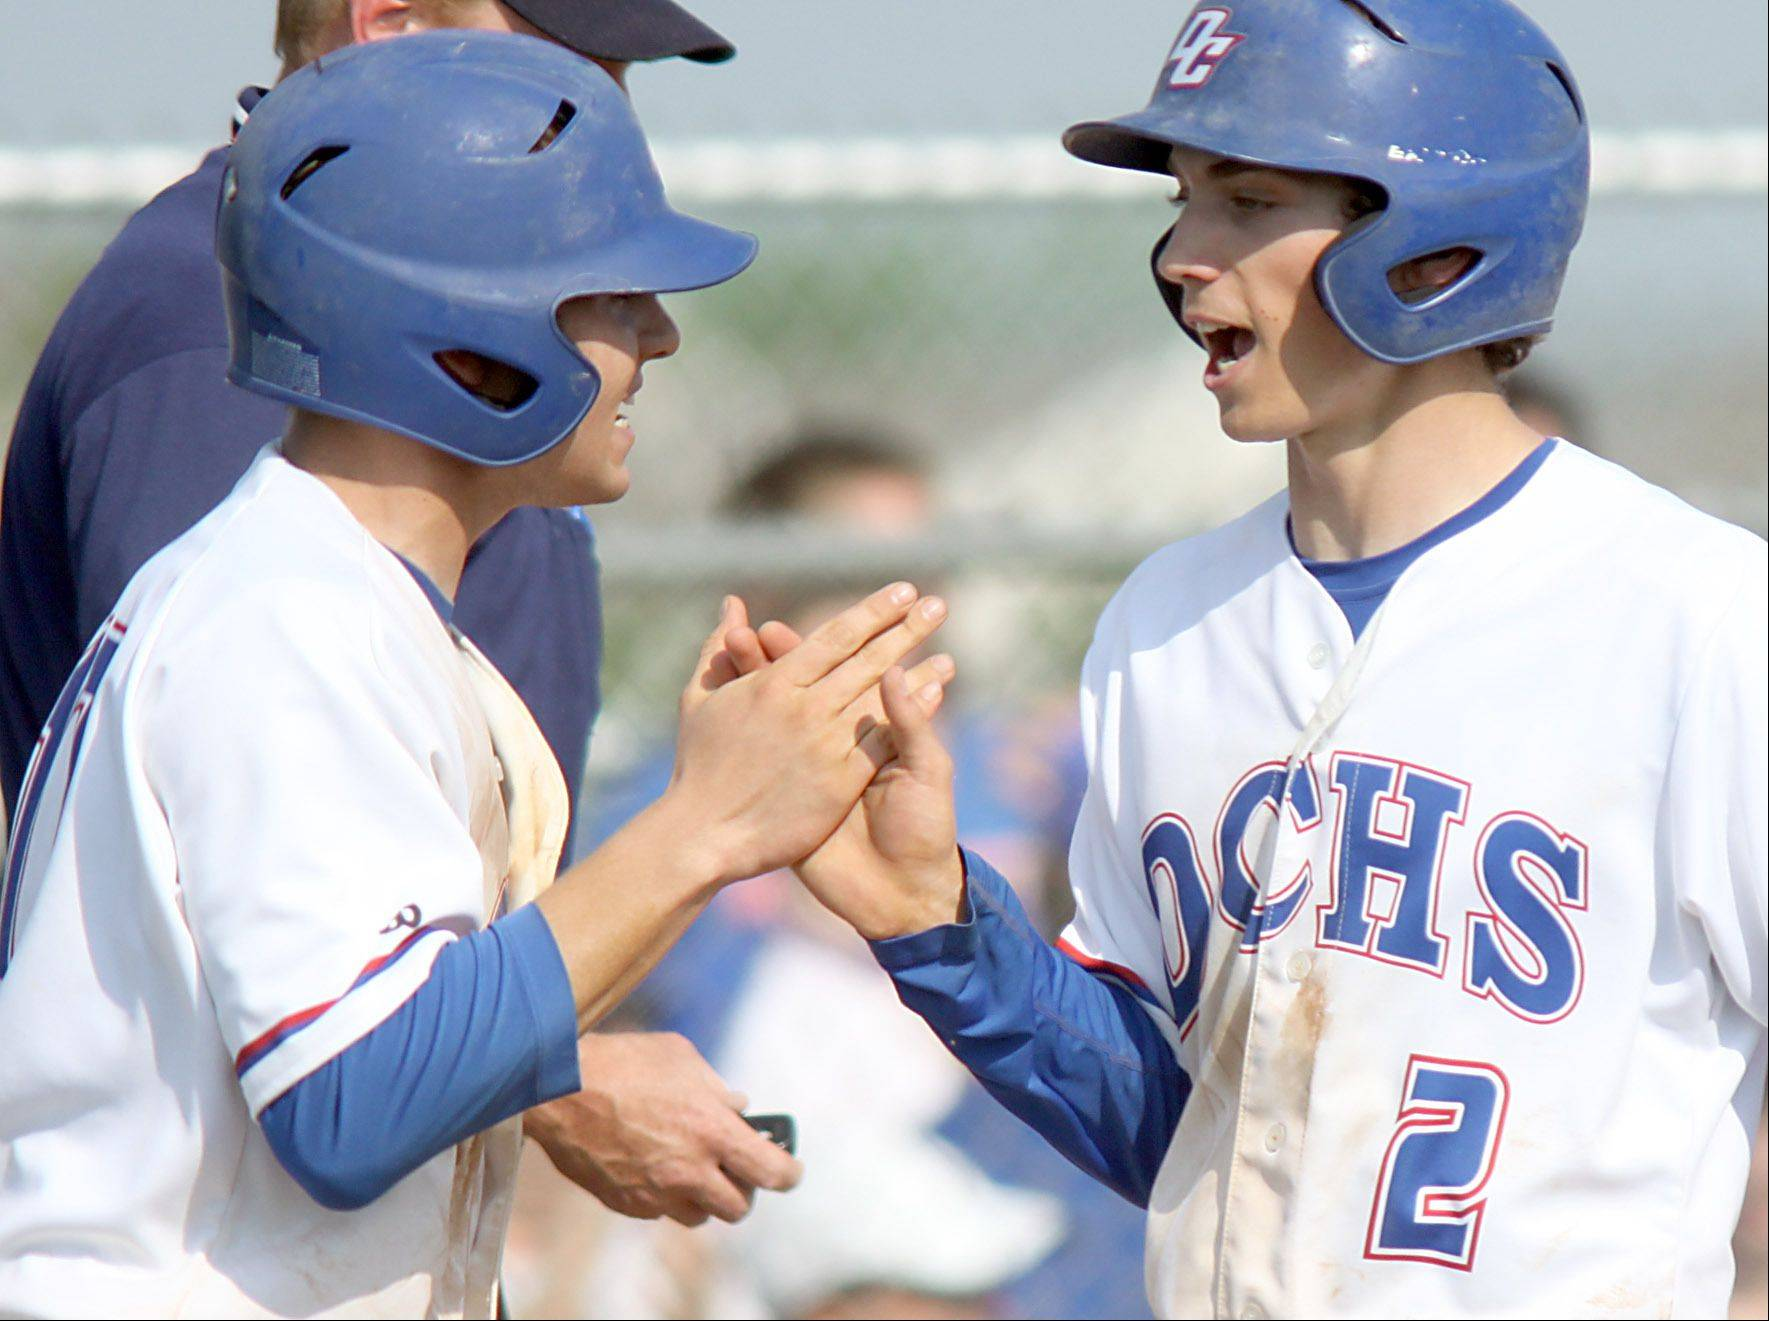 Dundee-Crown�s Zach Girard, left, greets Garrett Ryan at home as Ryan scored during a sectional semifinal game at Huntley against Prairie Ridge on Wednesday night. The Chargers won 15-4.